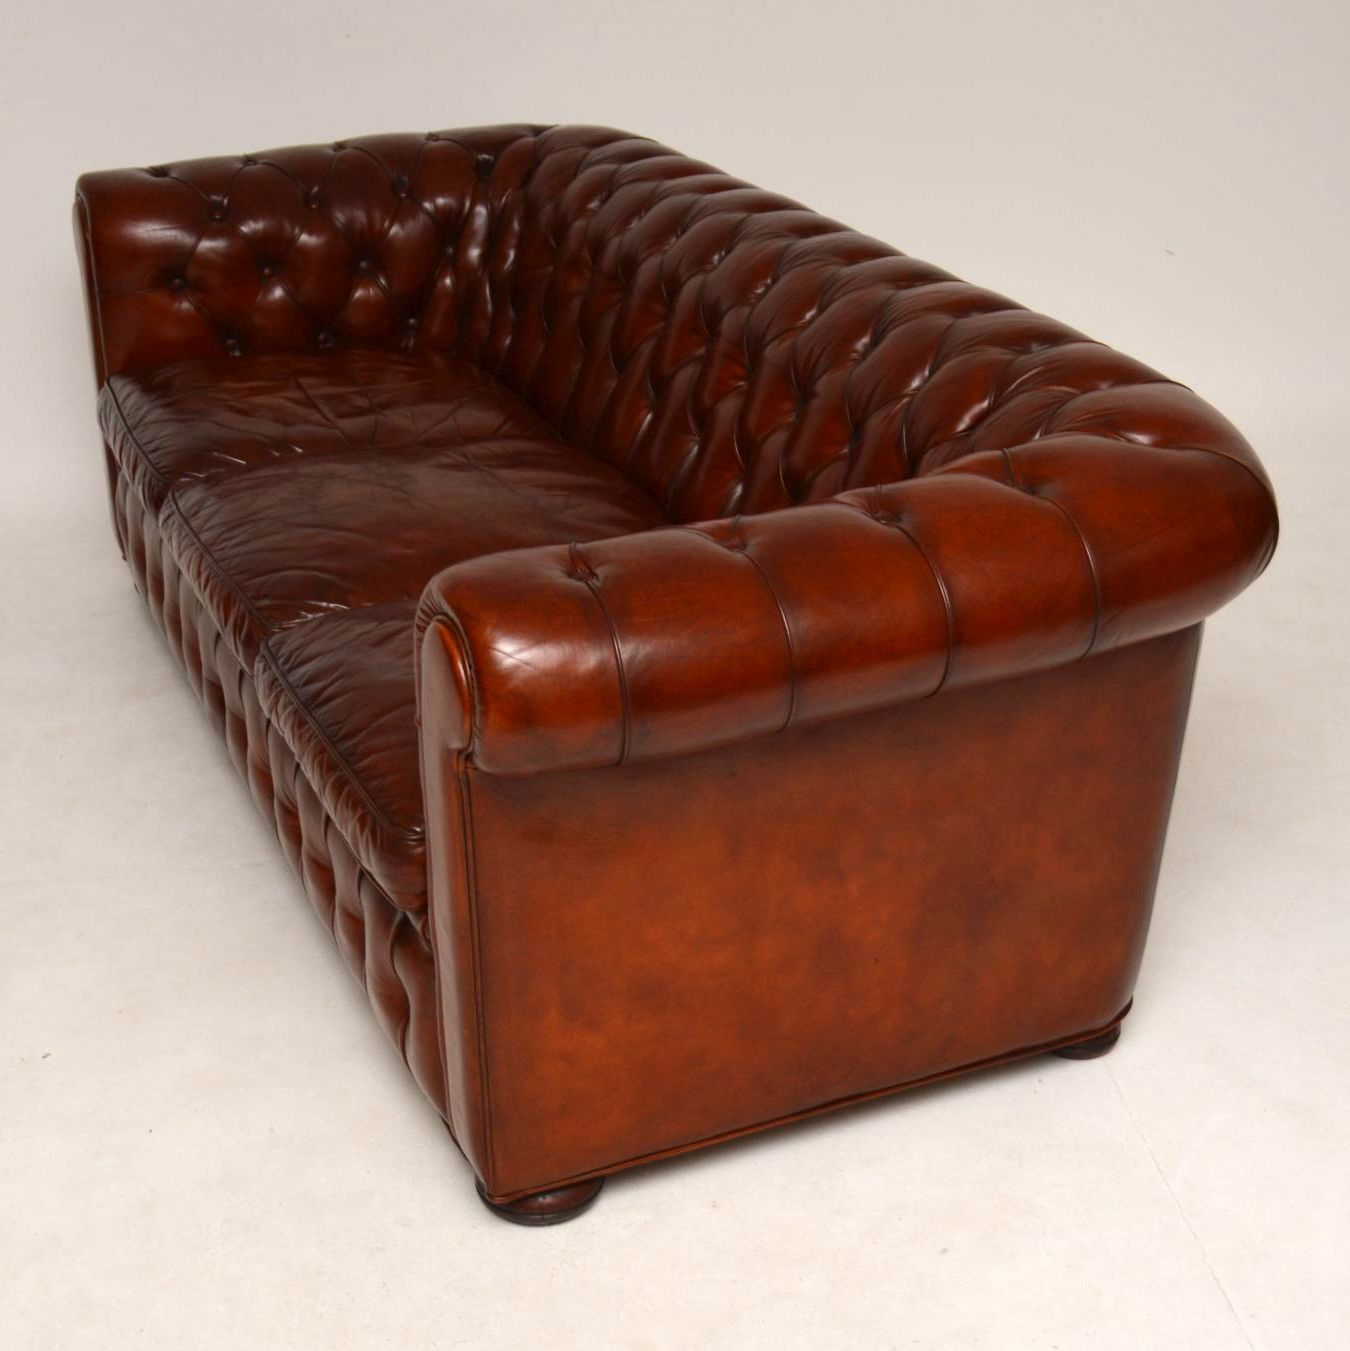 Antique Leather 3 Seater Chesterfield Sofa – Marylebone Regarding Vintage Chesterfield Sofas (View 4 of 15)